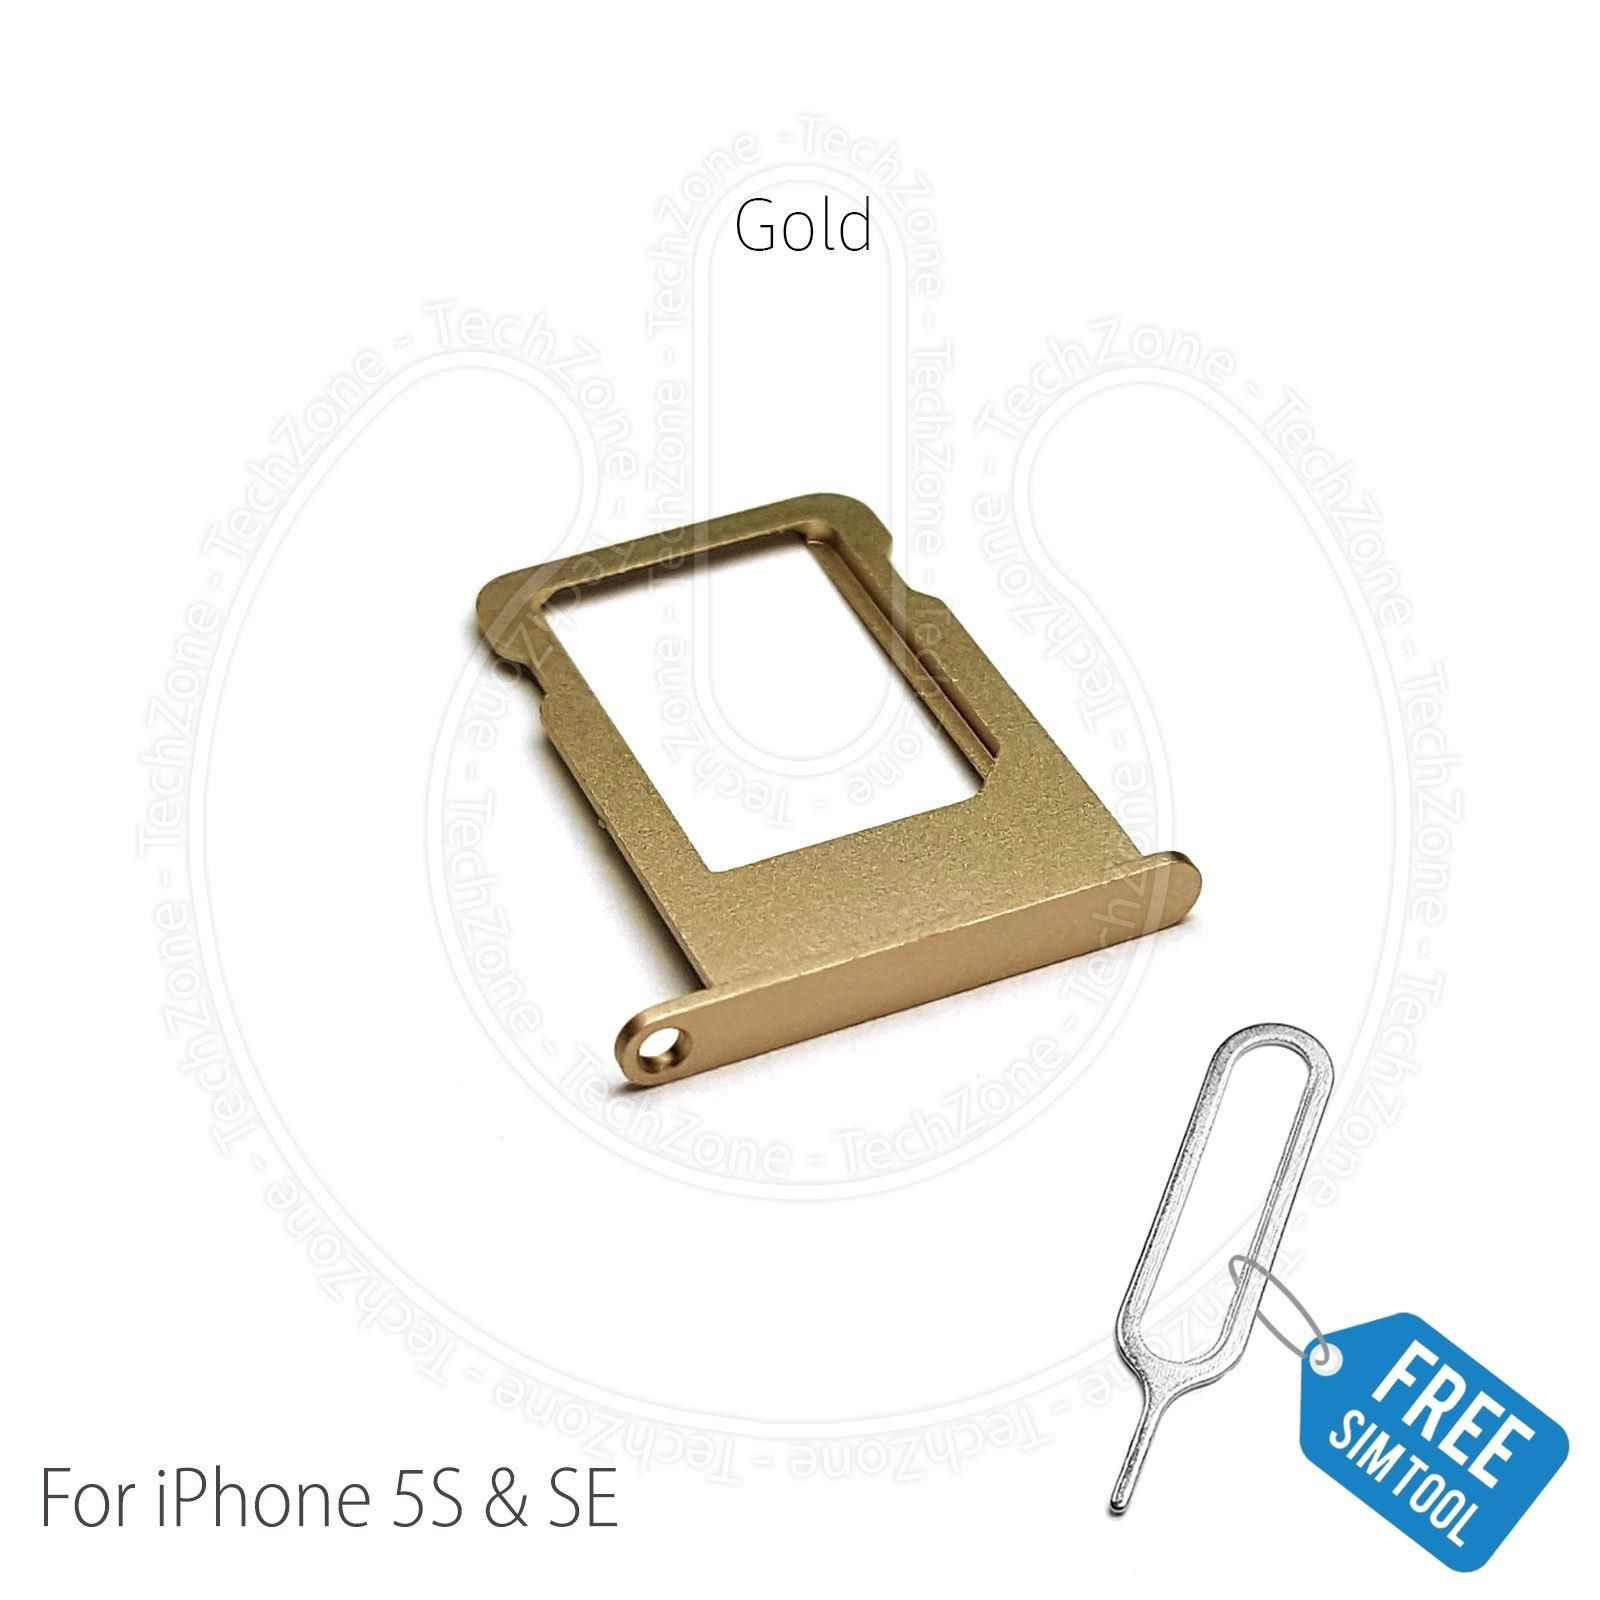 huge discount 8db96 e29b4 Replacement Nano Sim Card Holder Tray Slot for Apple iPhone 5s & iPhone SE  Gold with Sim ejector tool